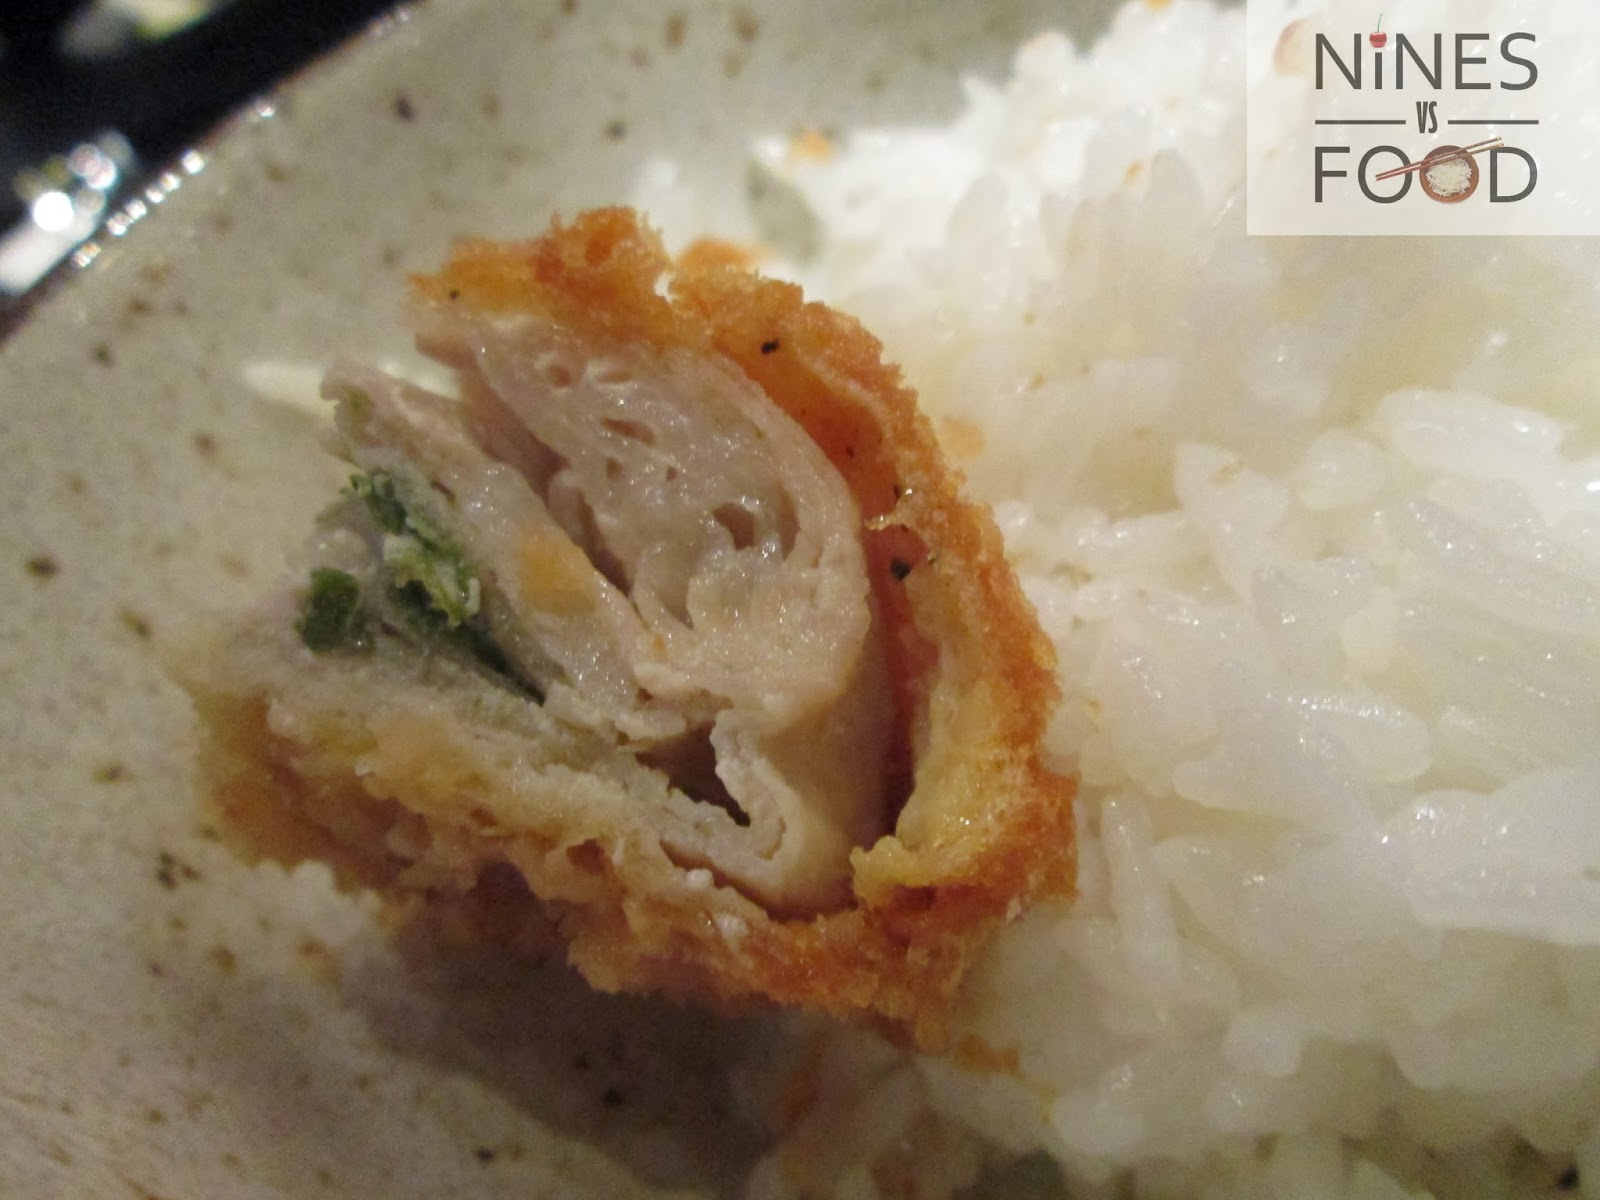 Nines vs. Food - Kimukatsu Manila Philippines-19.jpg